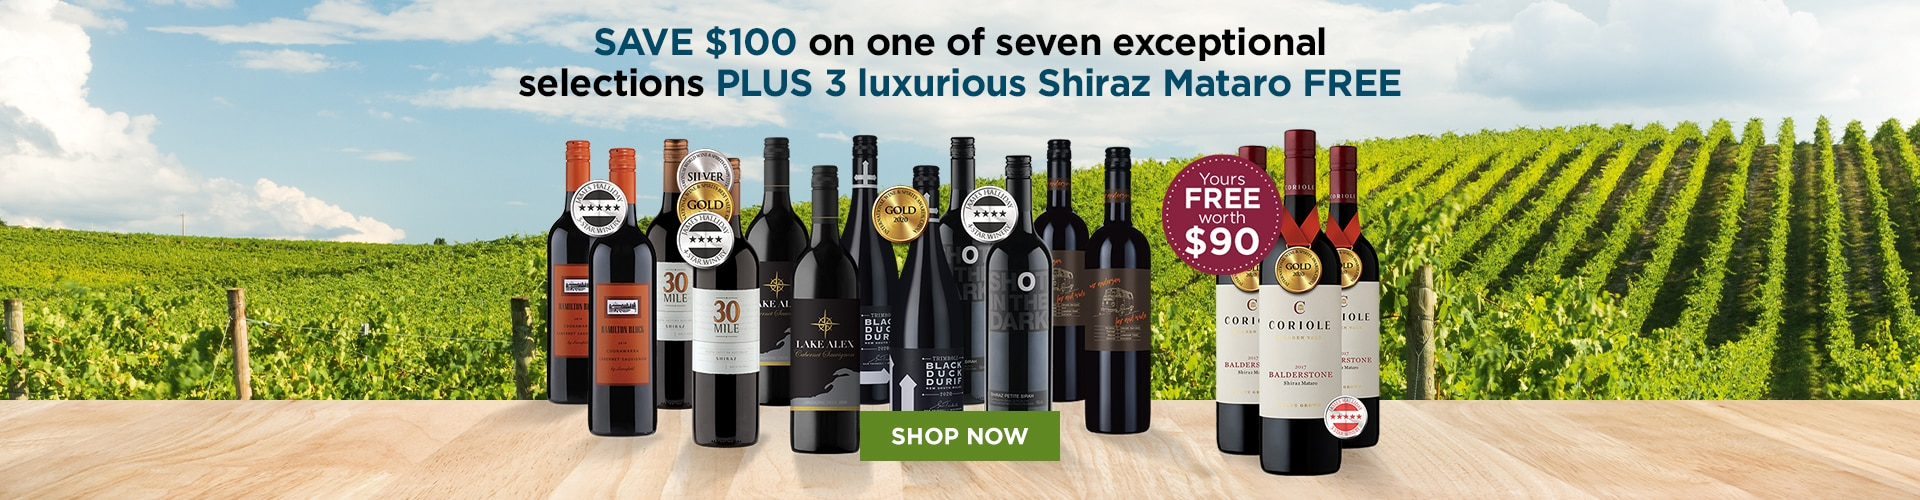 Luxurious Shiraz